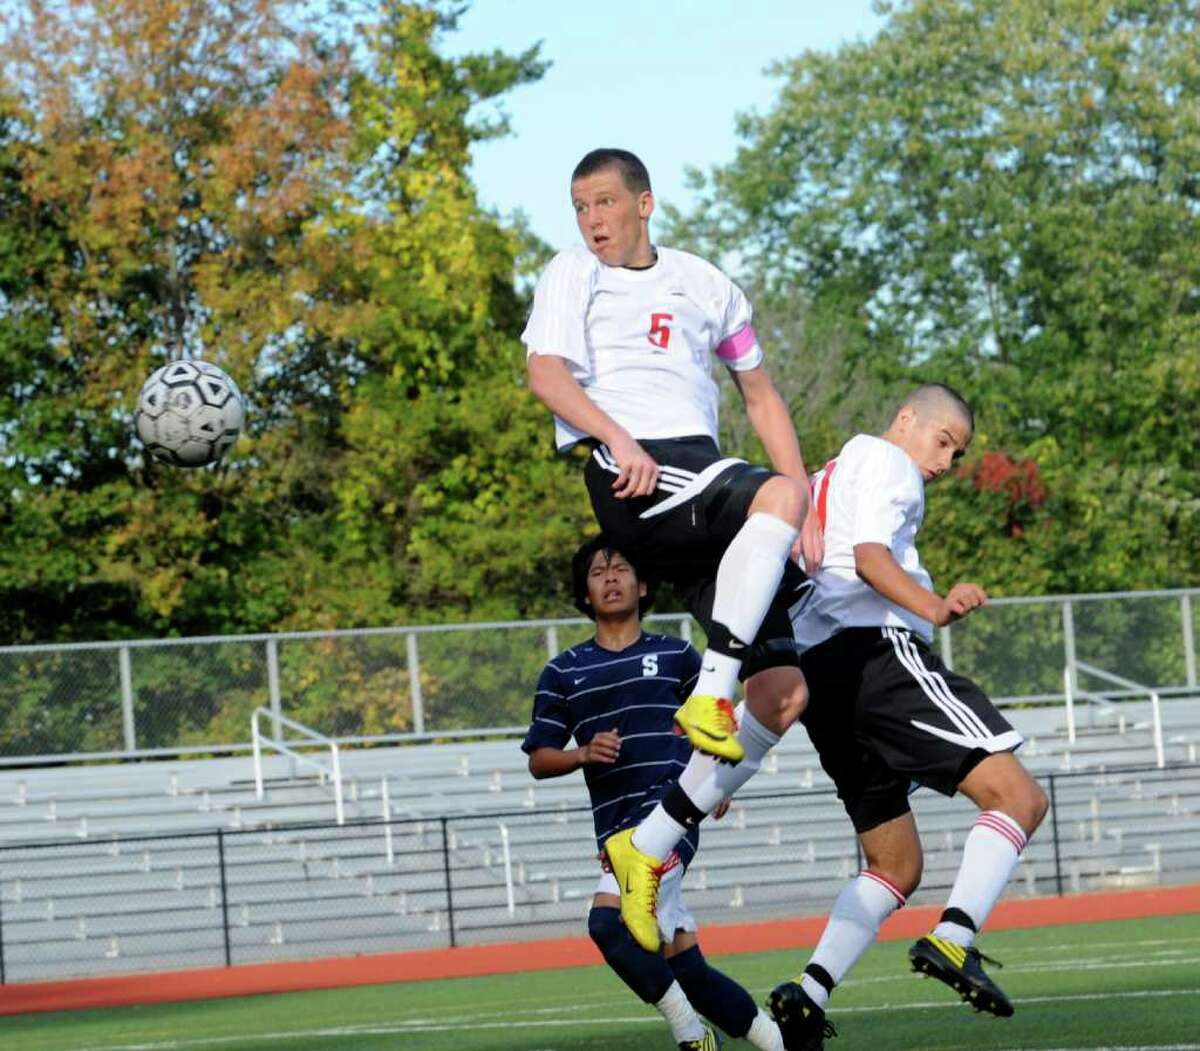 Will Gittings #5 and Ryan Flippin #21 of Greenwich High School battle Staples' Alex Tonsberg #16 for the ball during Monday's game at Cardinal Stadium. Staples rallied from a 2-0 deficit to beat Greenwich 3-2.